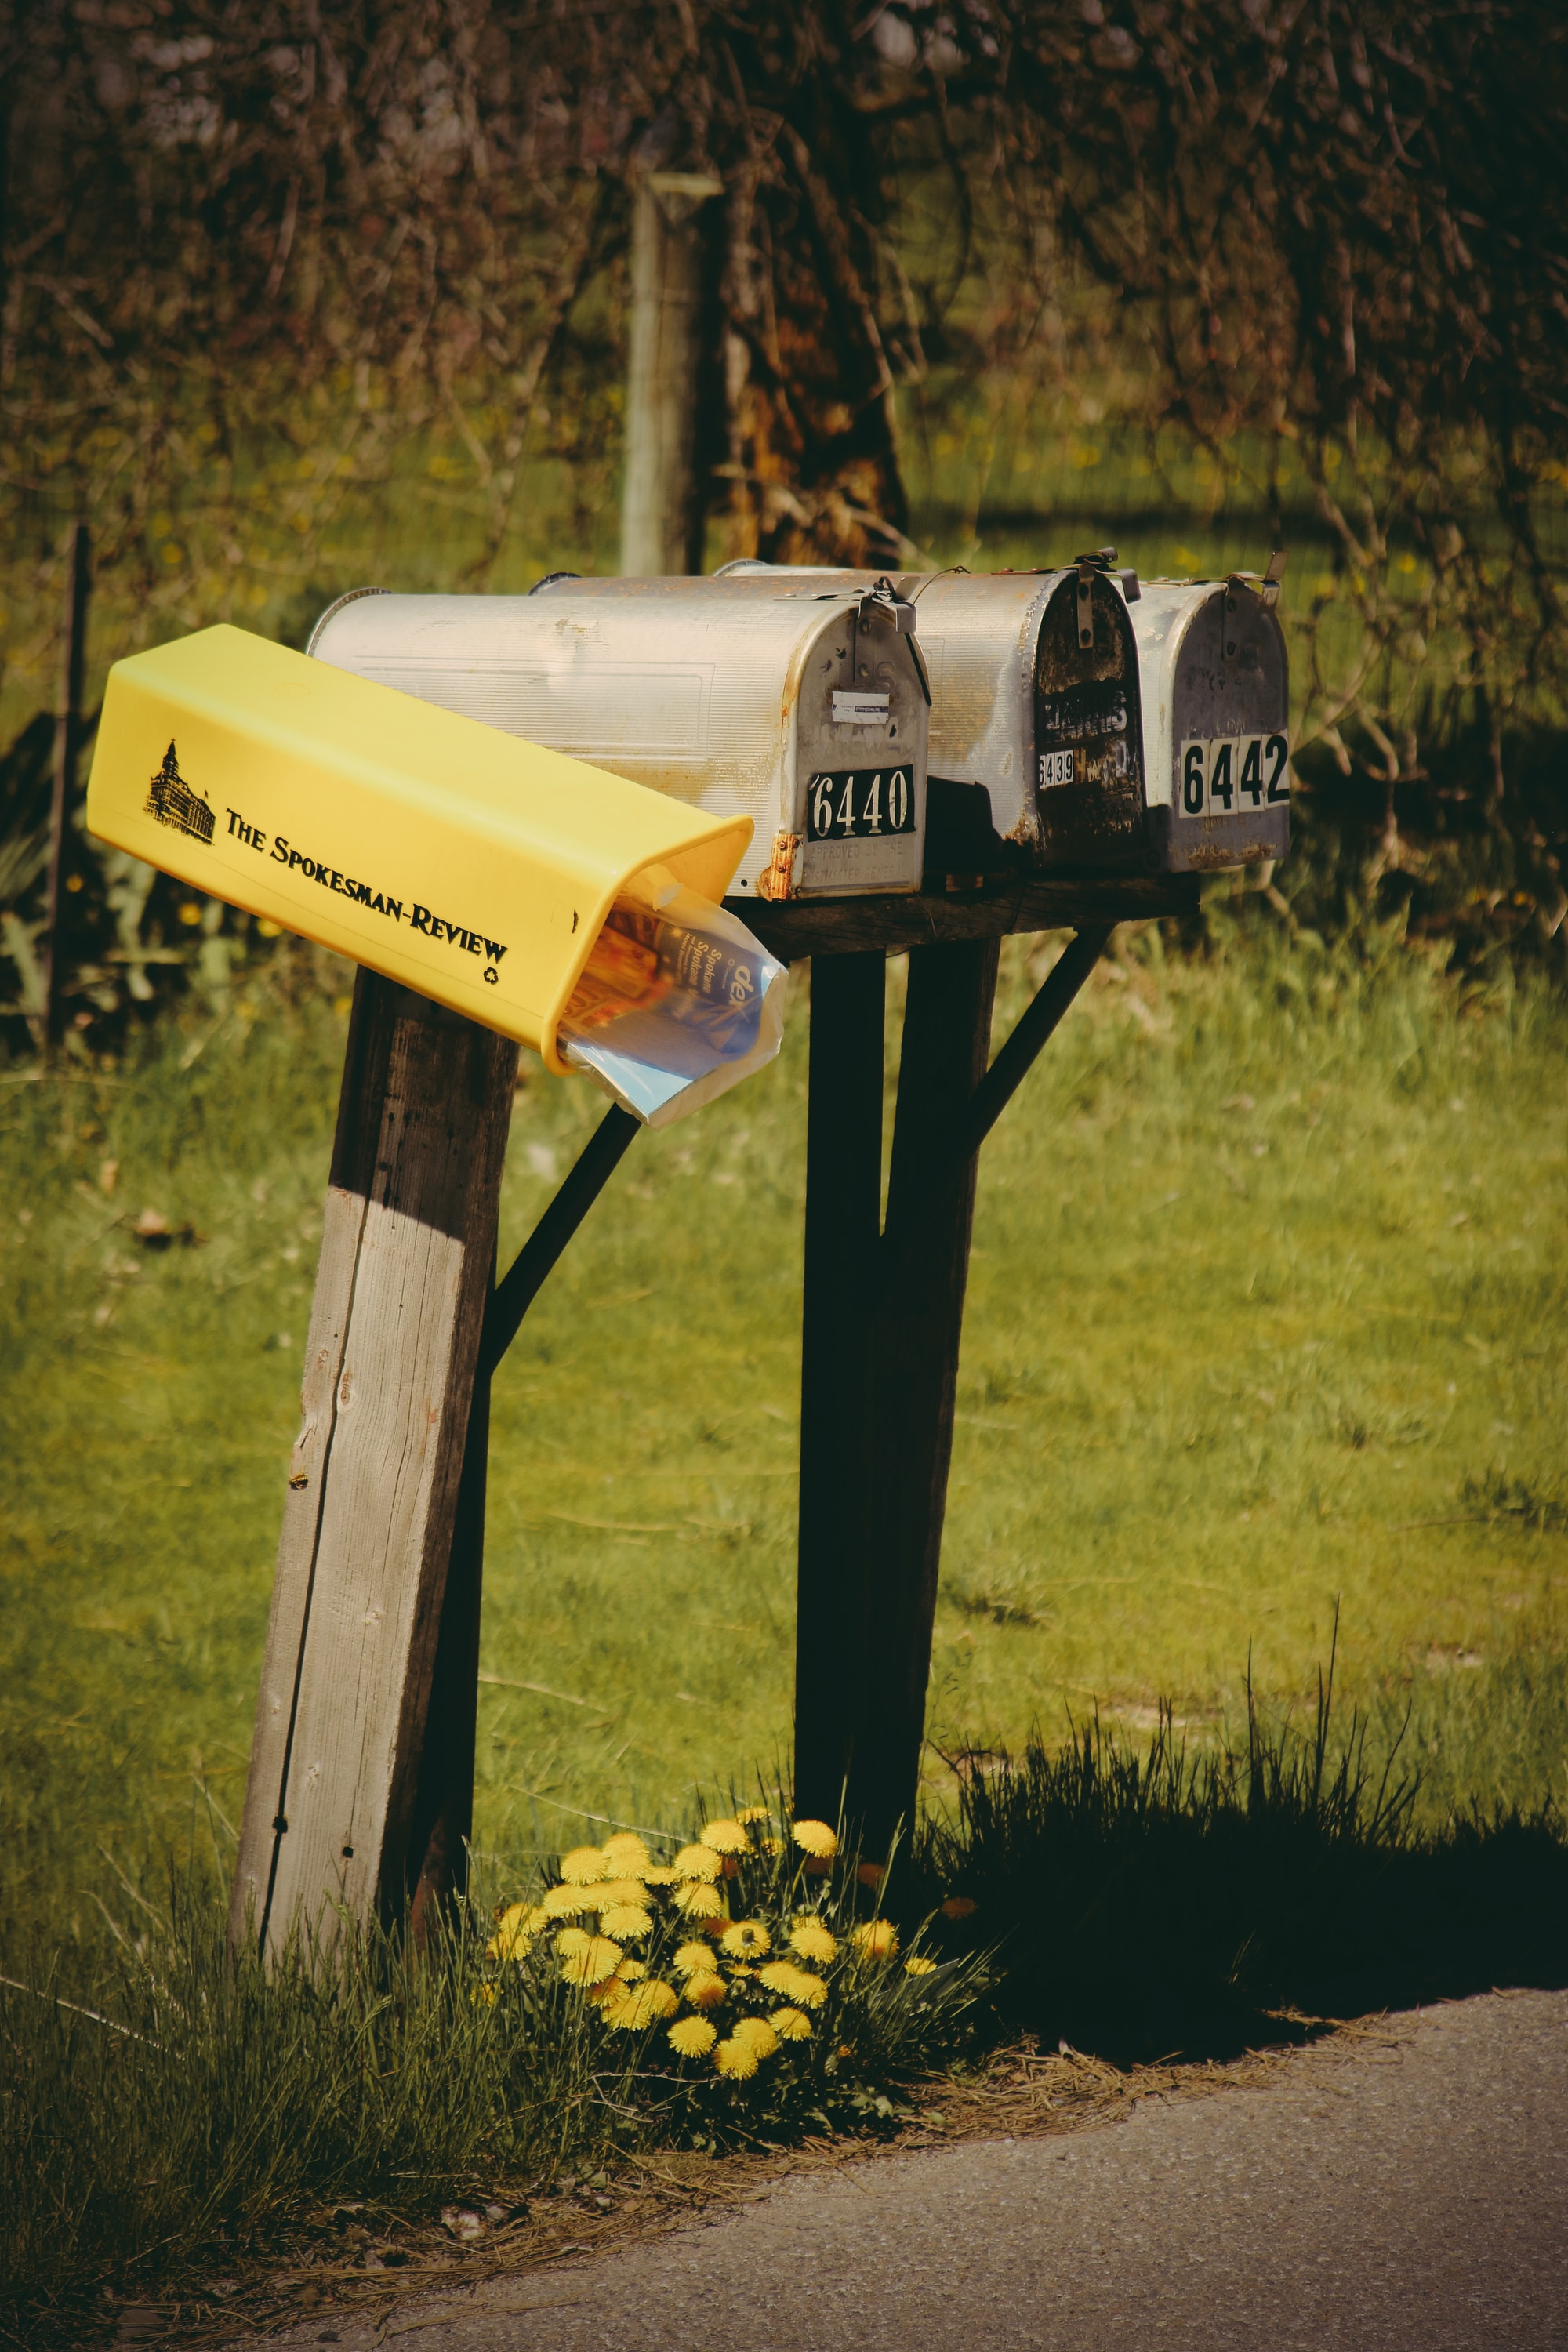 2020 HOA Invoices have been mailed